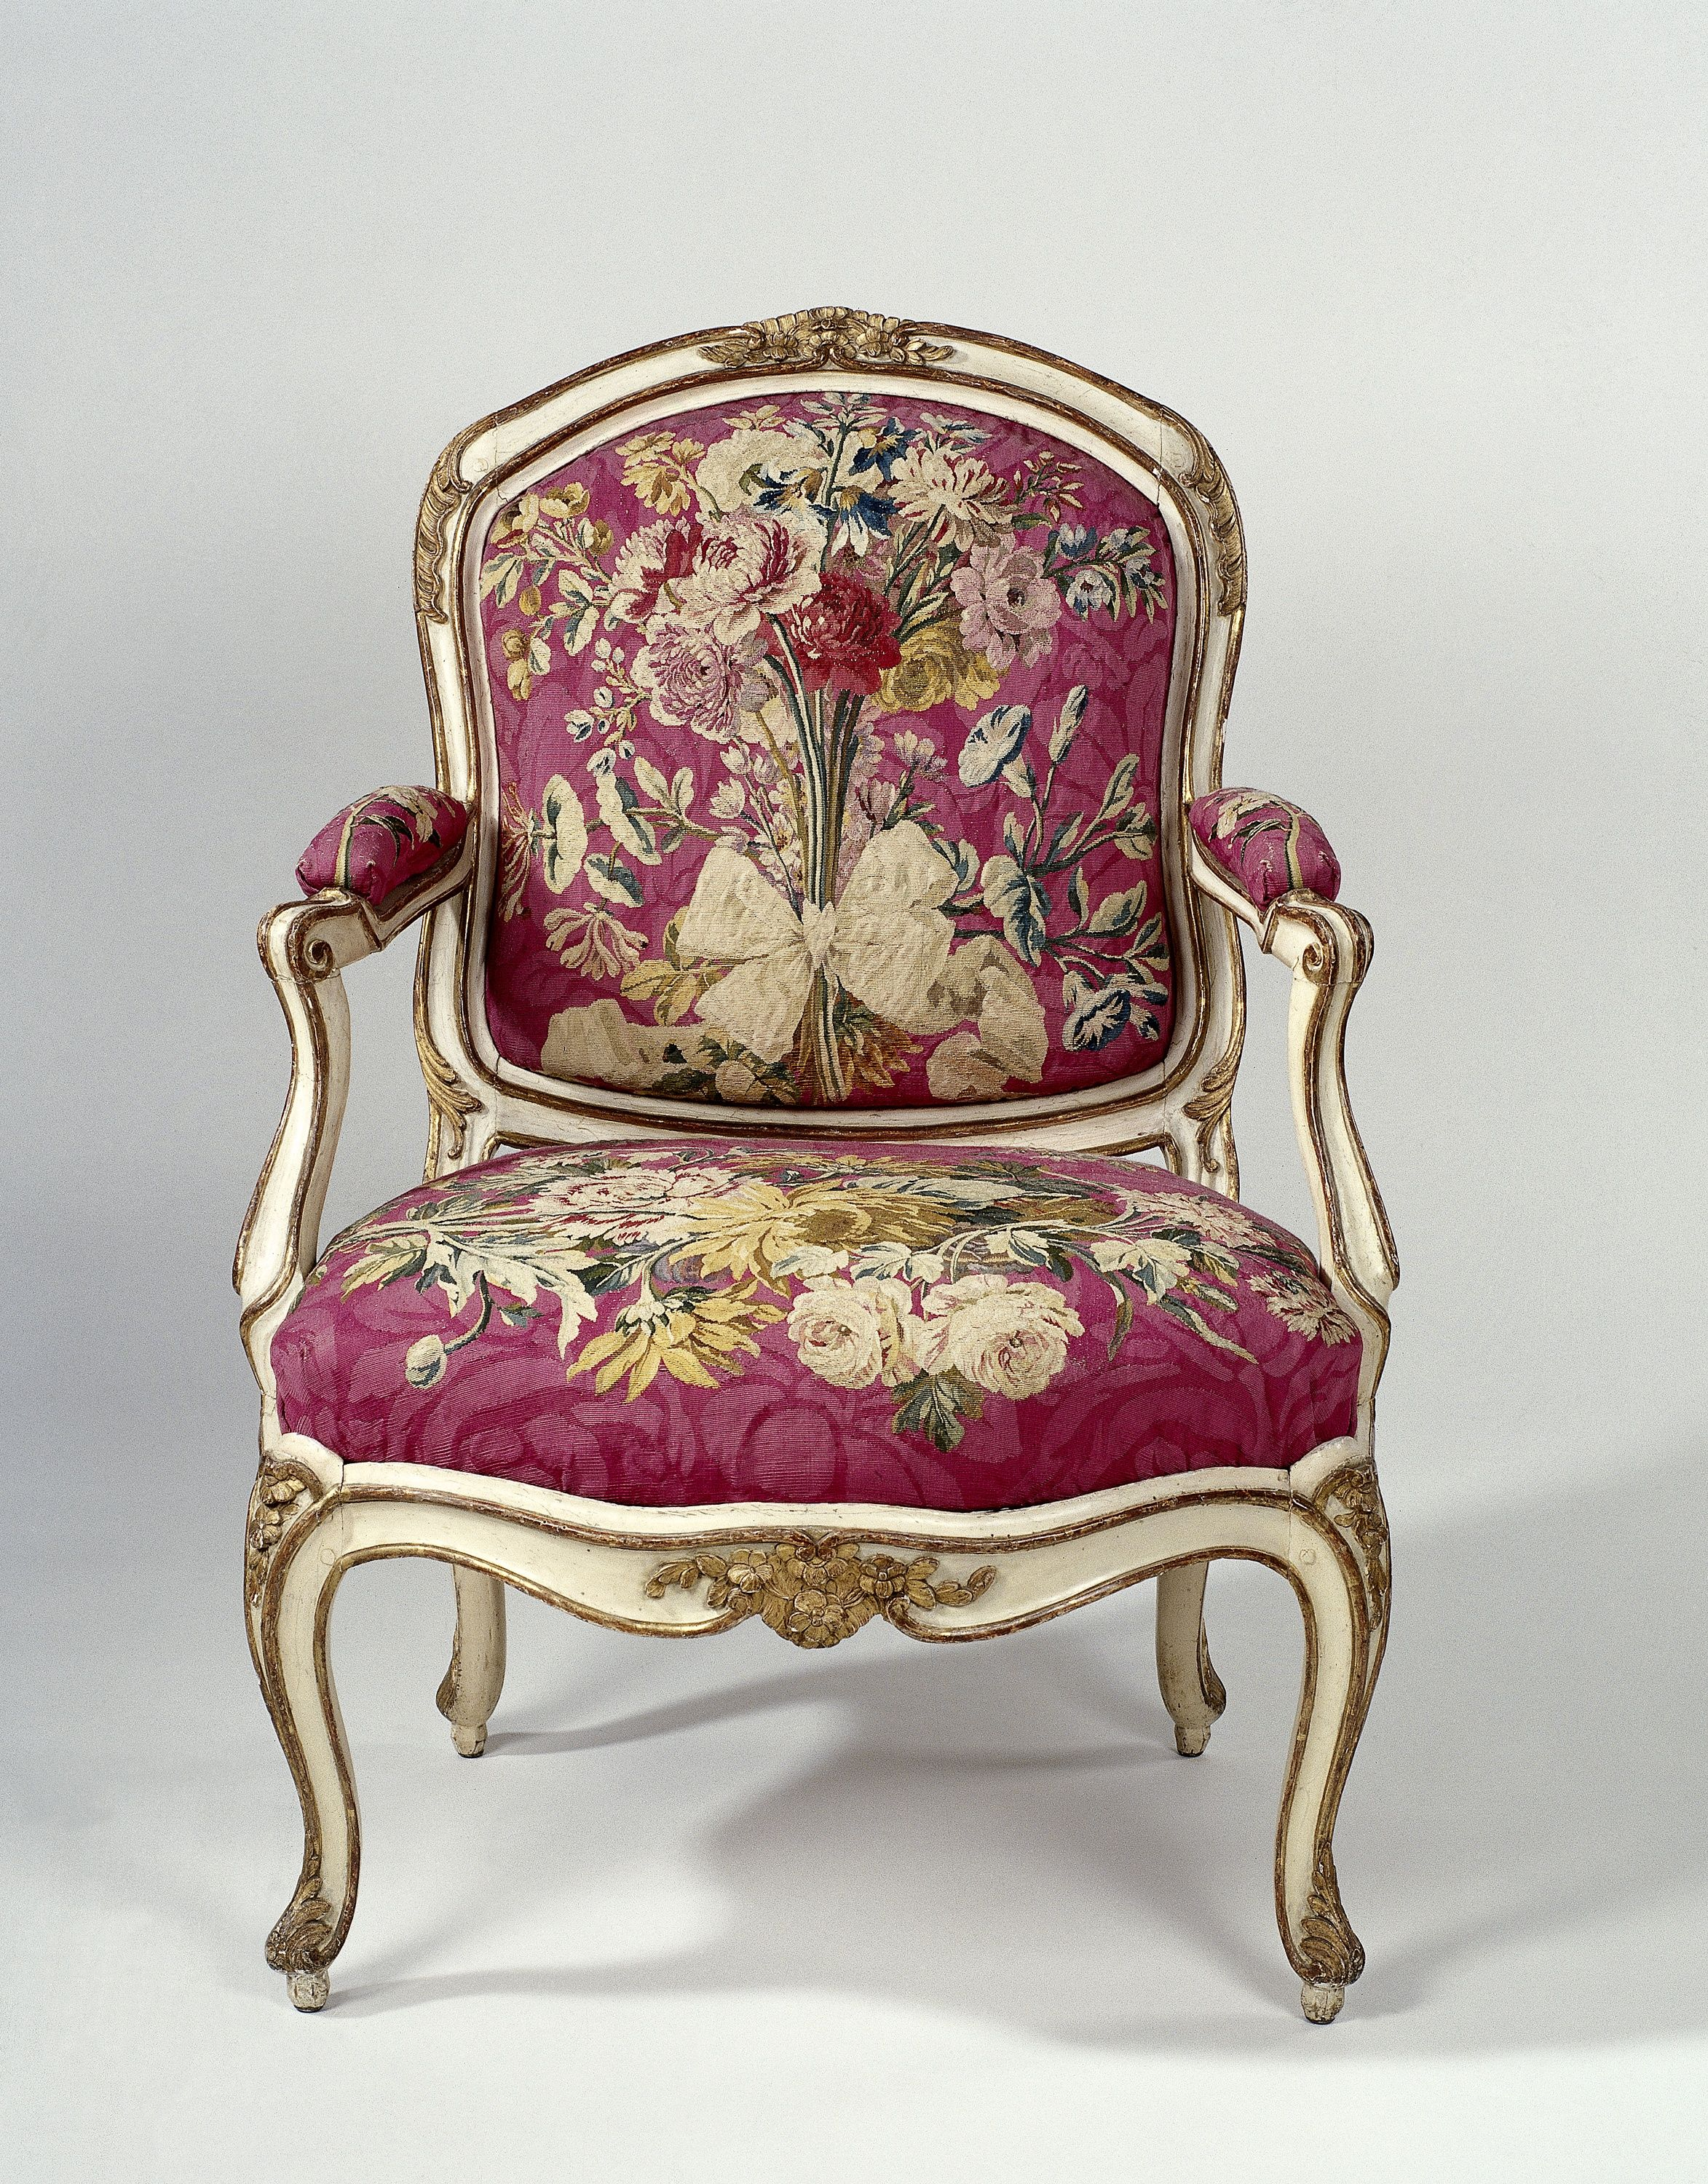 Flower Chair Armchair In Tapestry With Flower Bouquets By Gourdin C